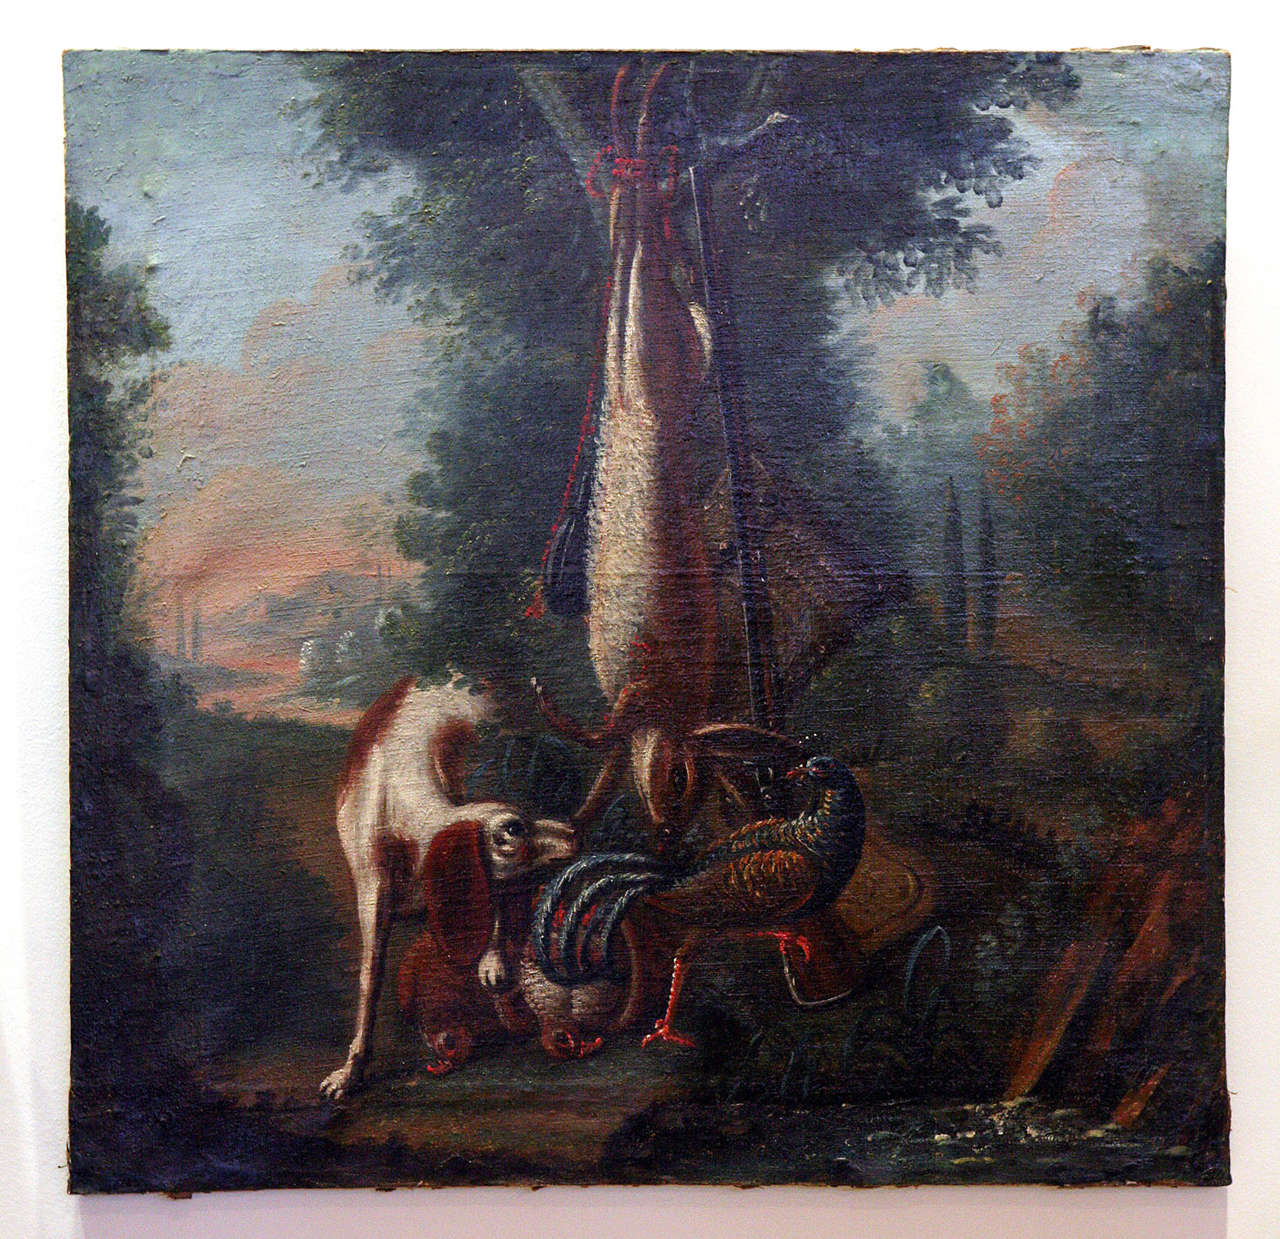 Spaniel oil painting set in French or Italian landscape.  Dog with trophies of the hunt.  Canvas stretched on wood frame.  Some restoration.